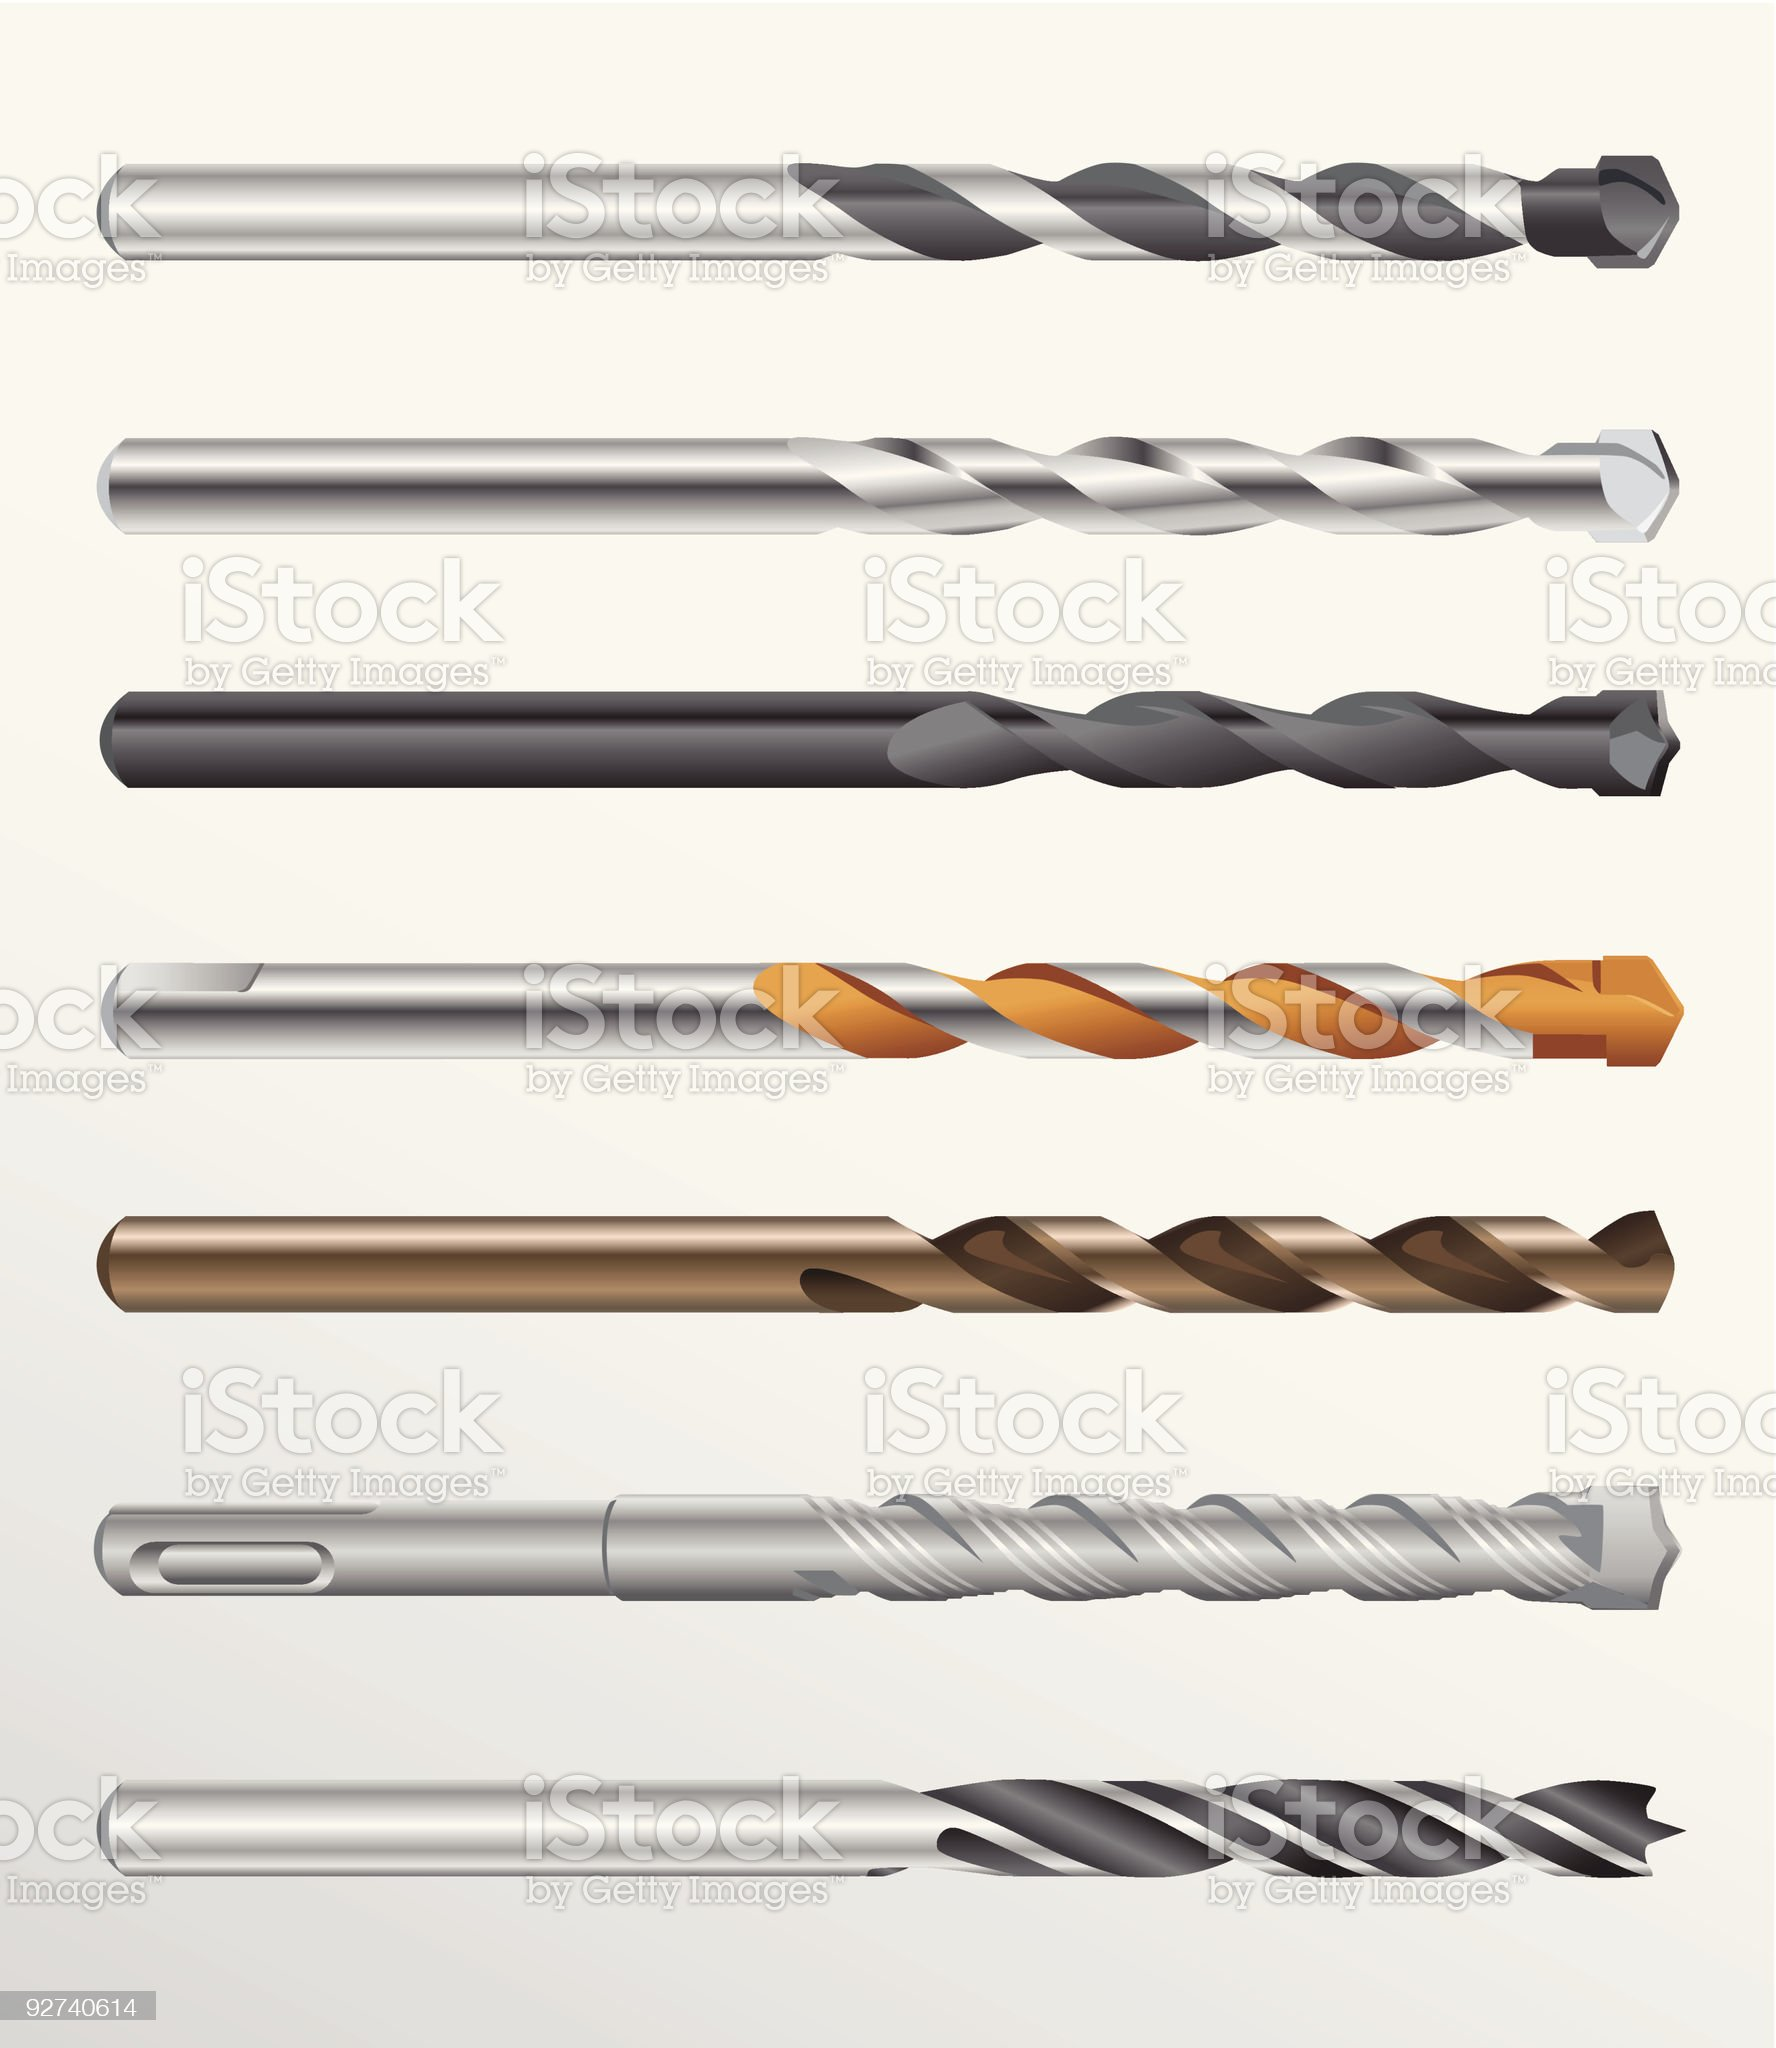 Drill bits royalty-free stock vector art